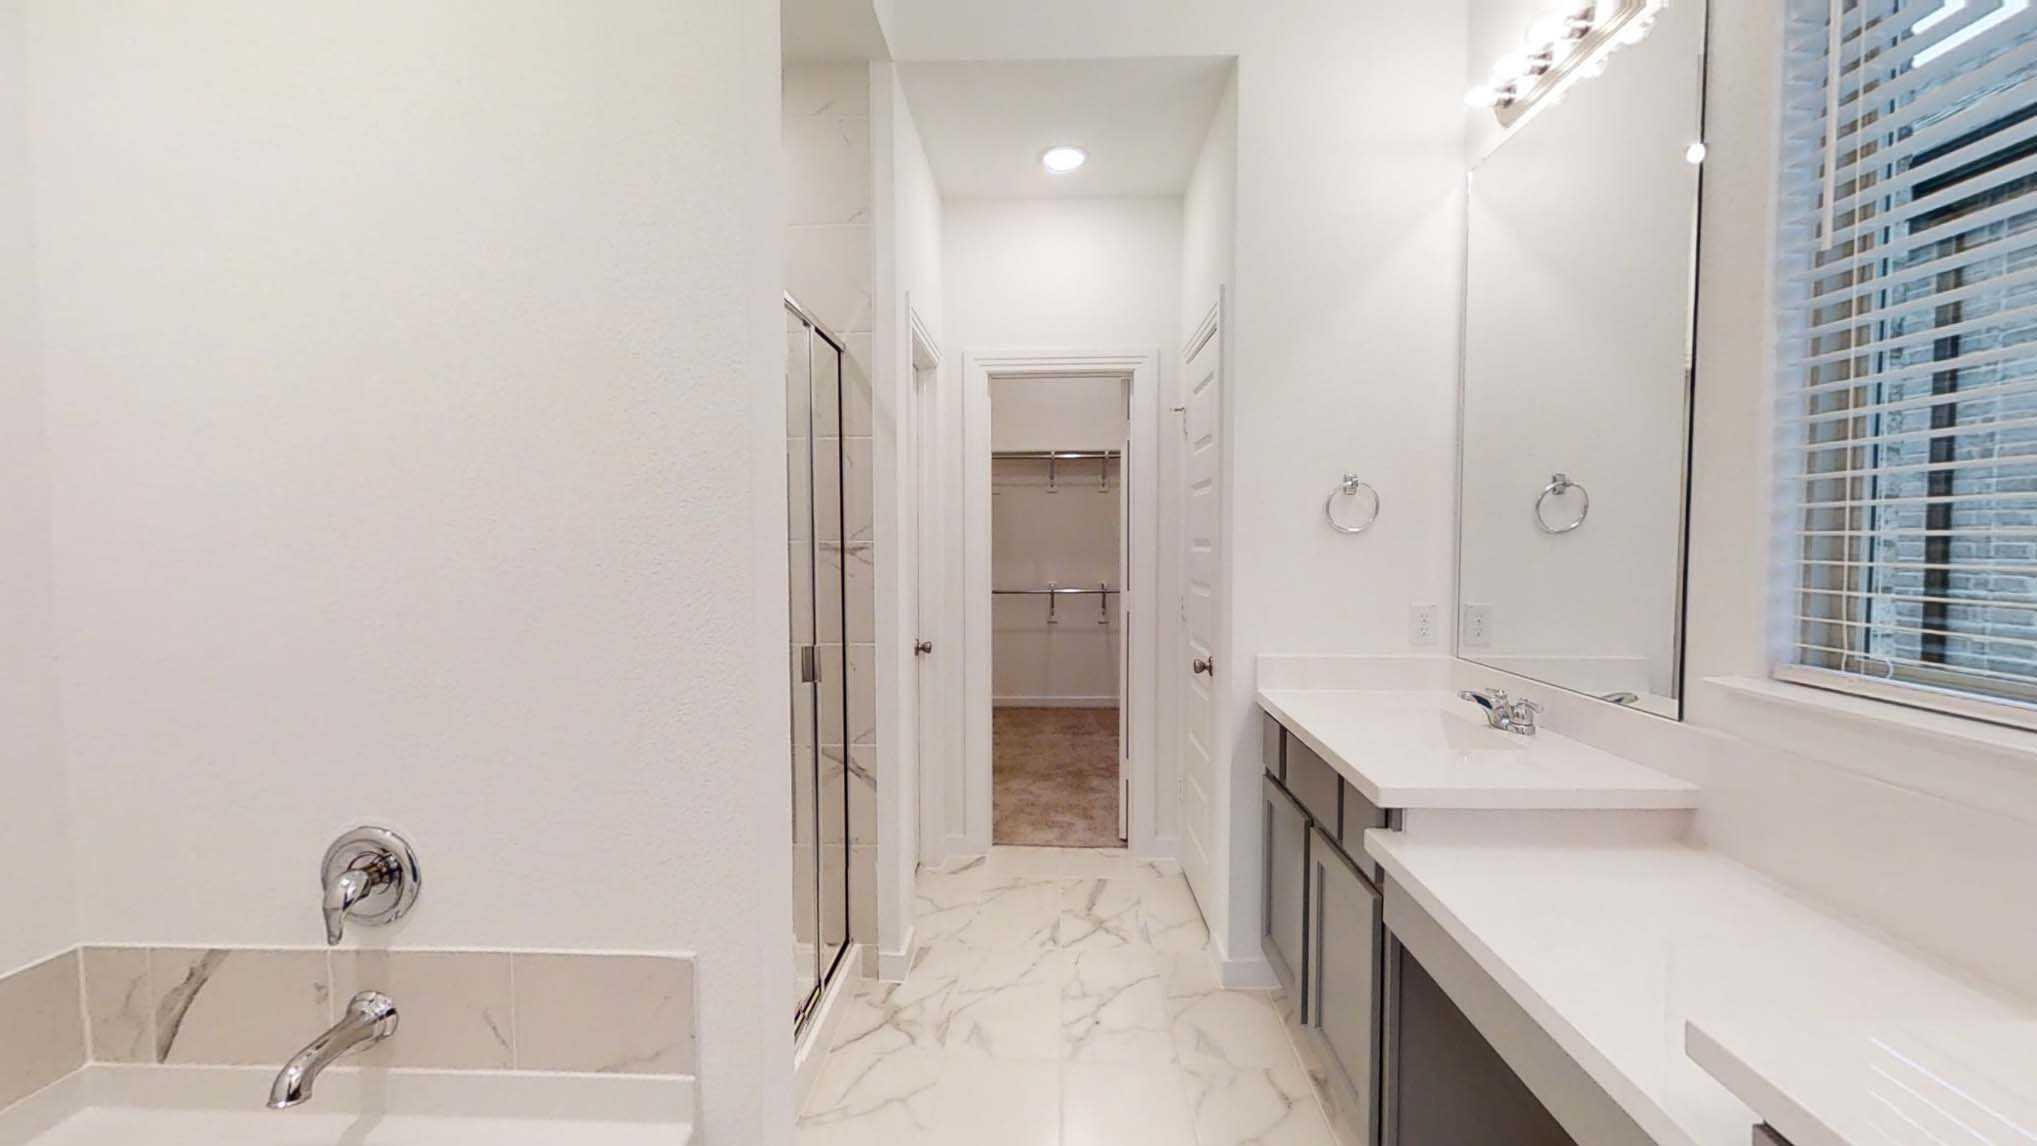 Bathroom featured in the Plan Denton By Highland Homes in Dallas, TX